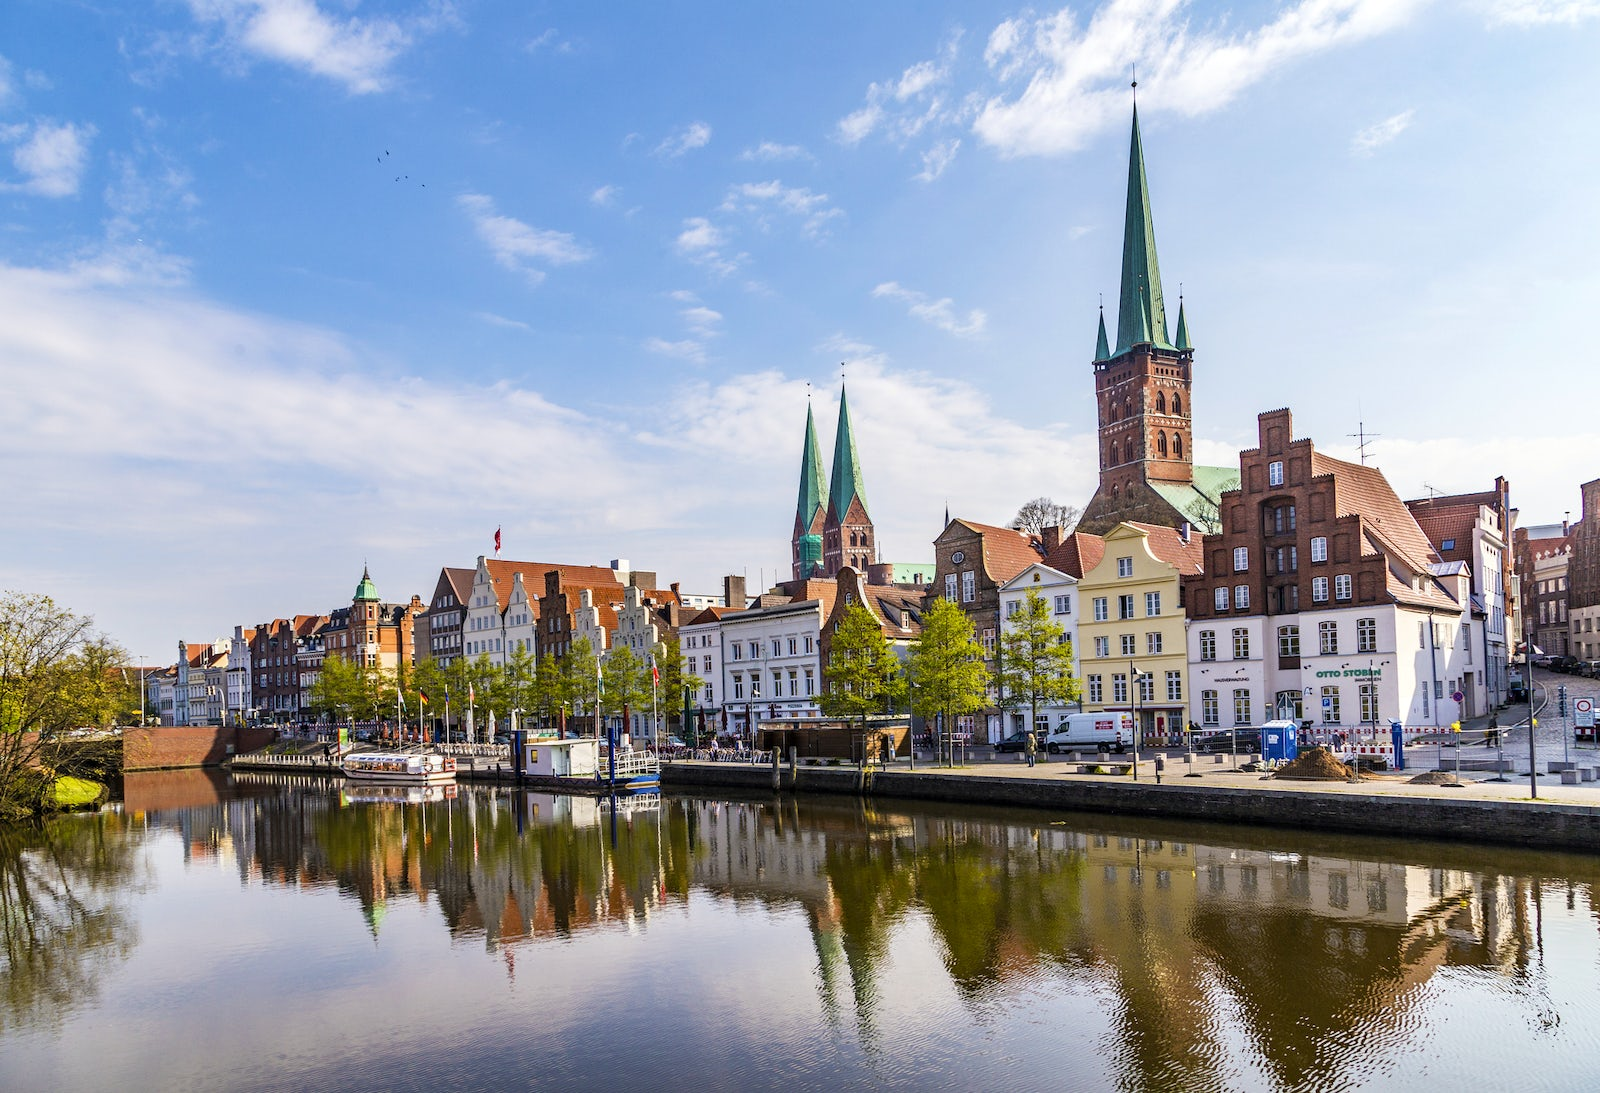 !i18n:en:data.cities:luebeck.picture.caption